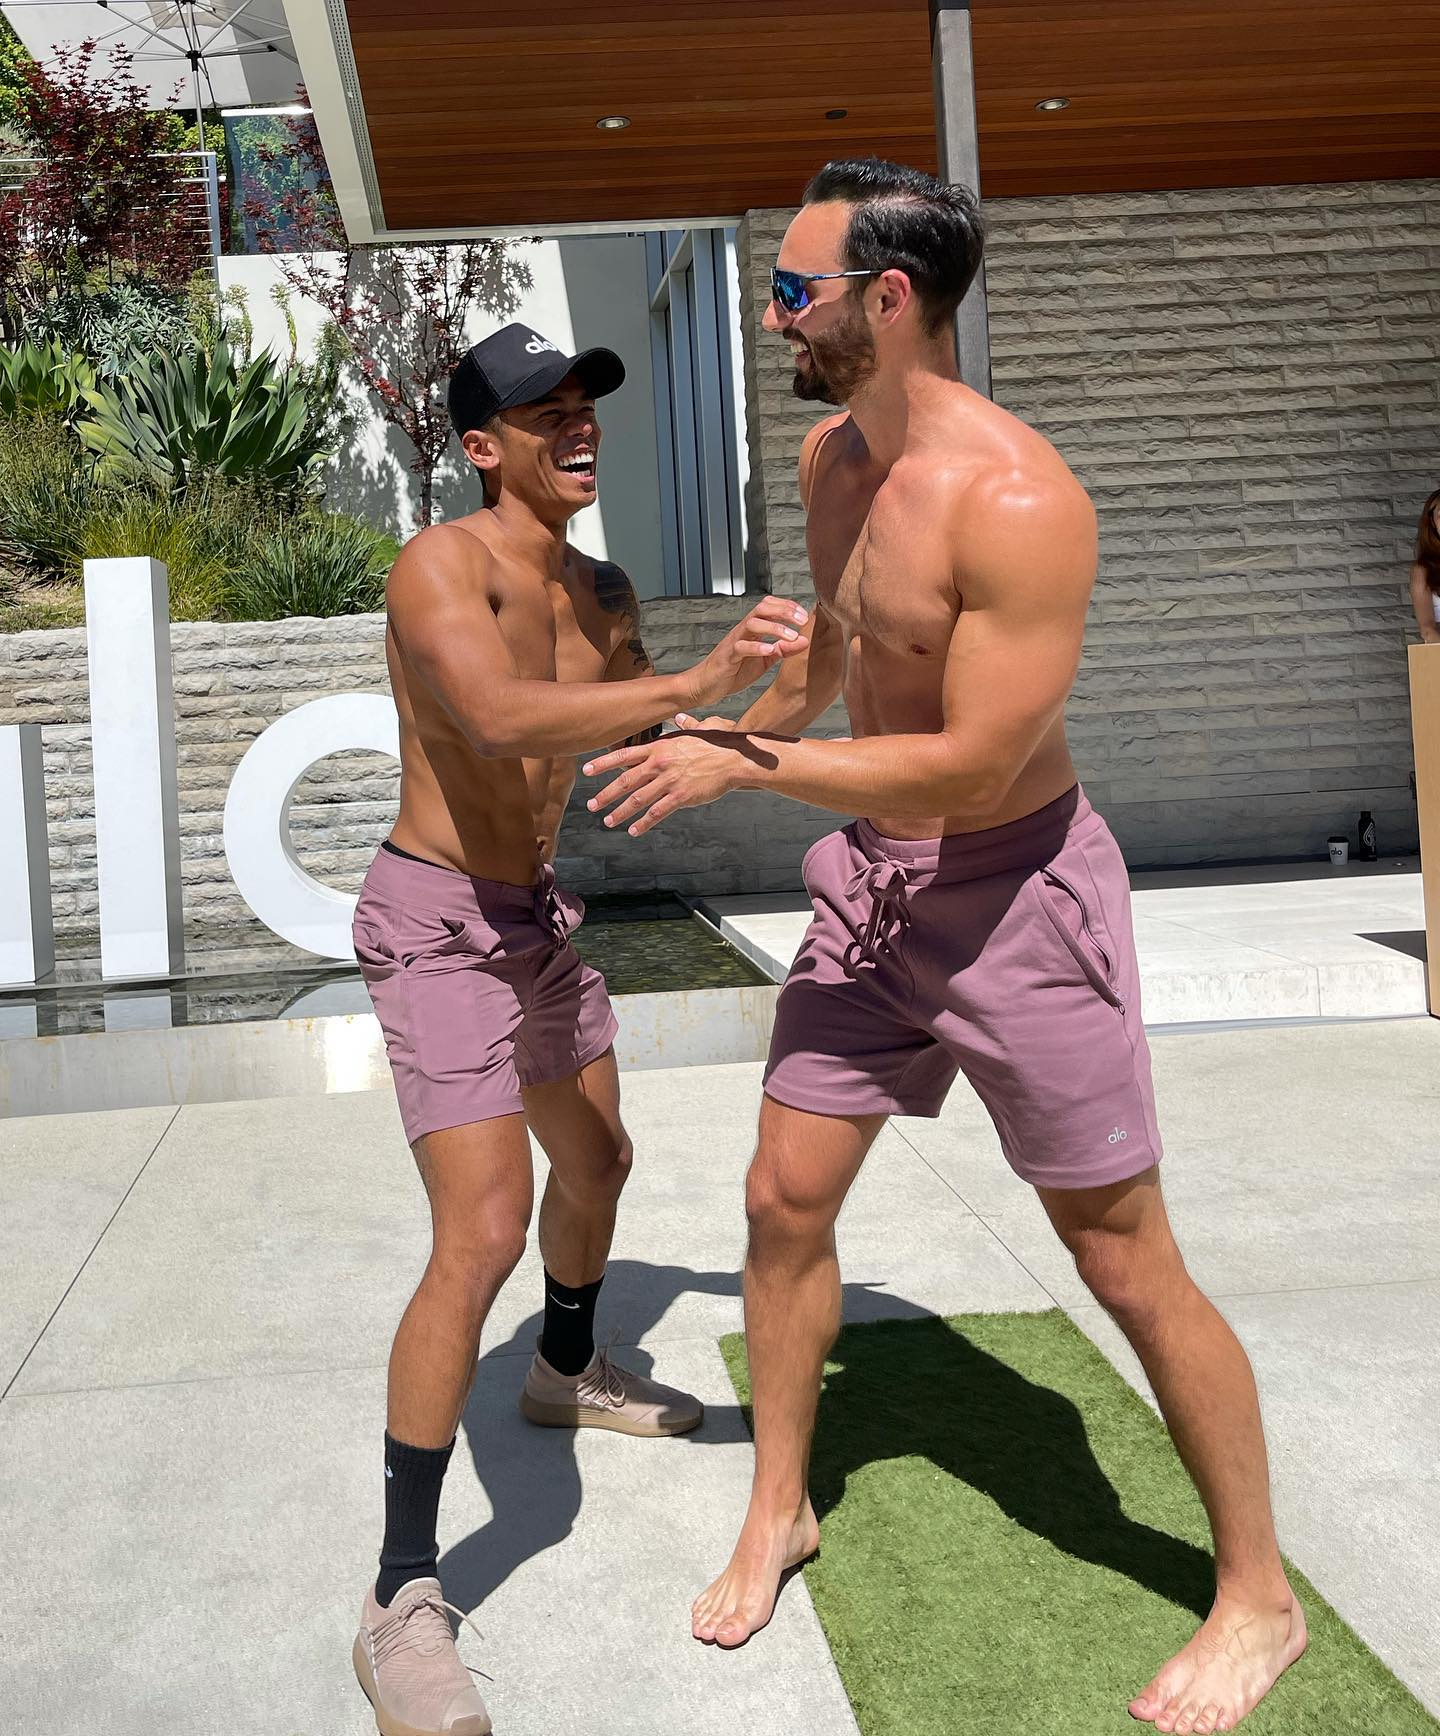 @nikkoreyes and @danielricefitness laughing together as they enter Alo House.